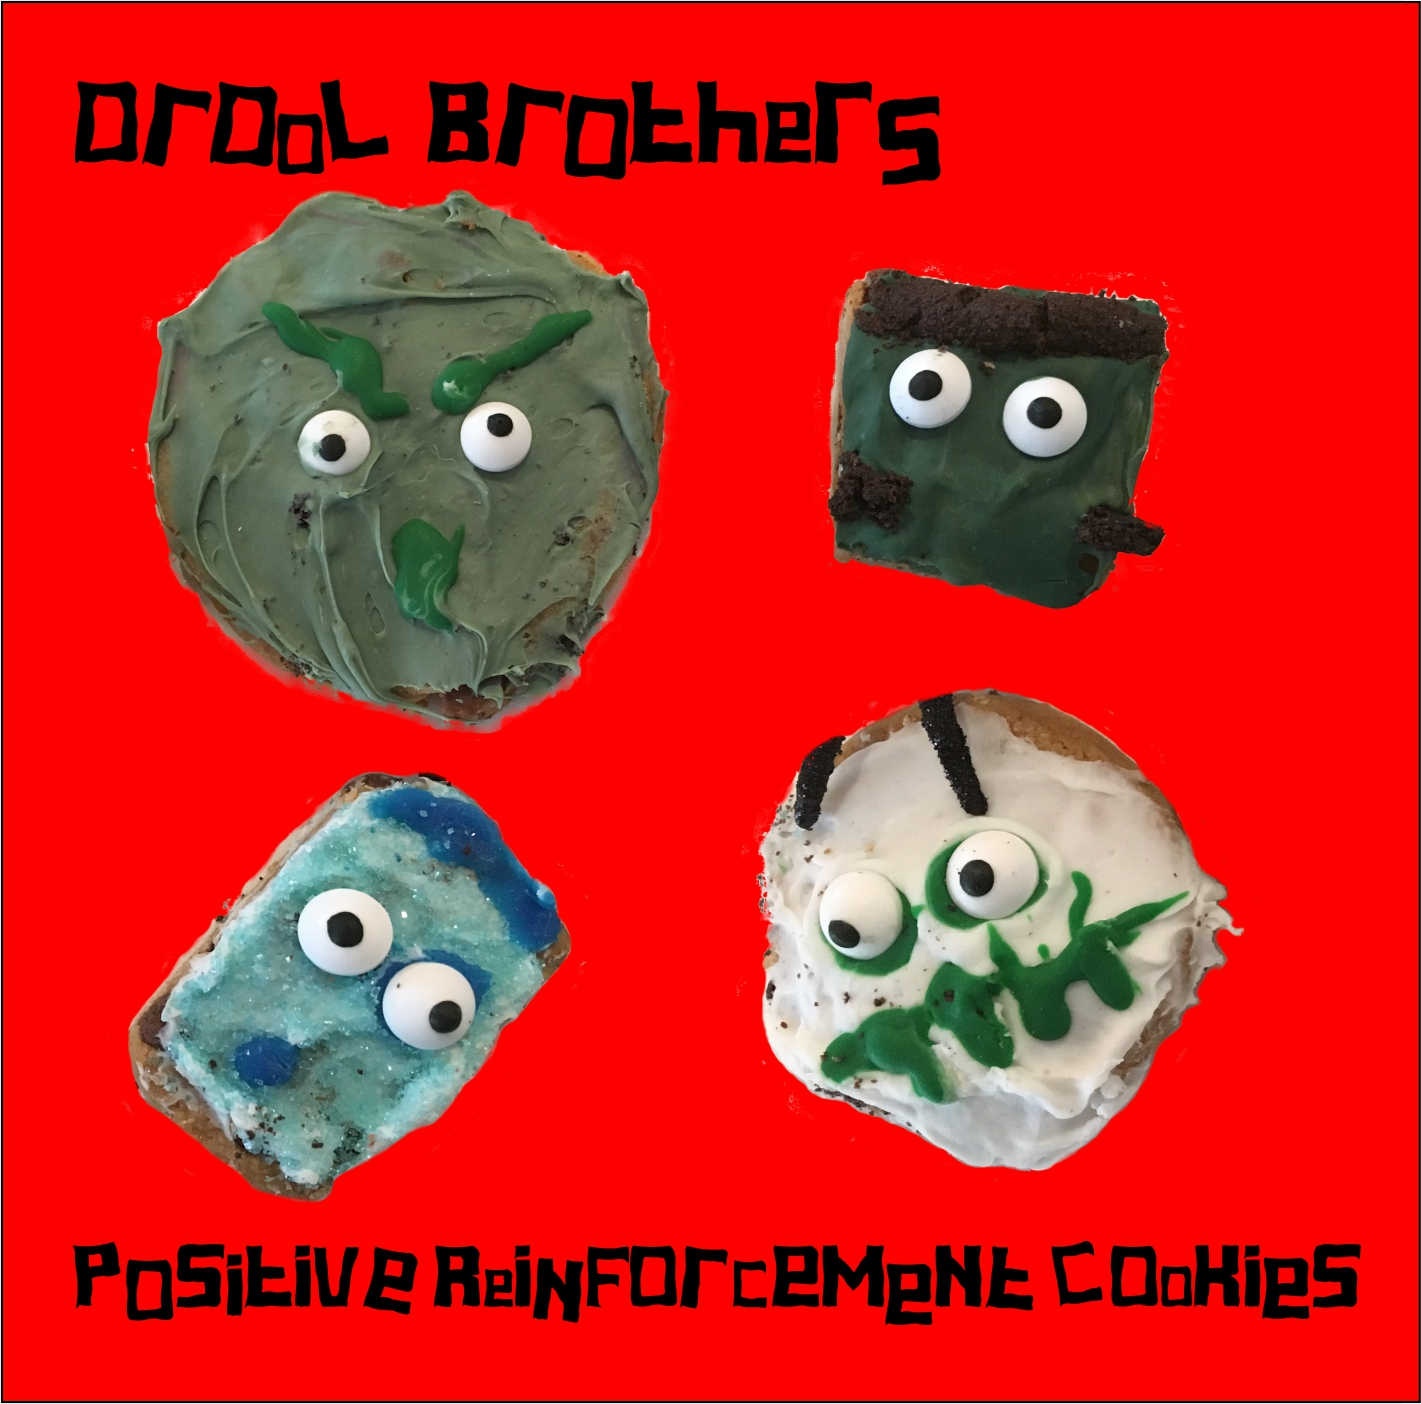 Positive Reinforcement Cookies EP